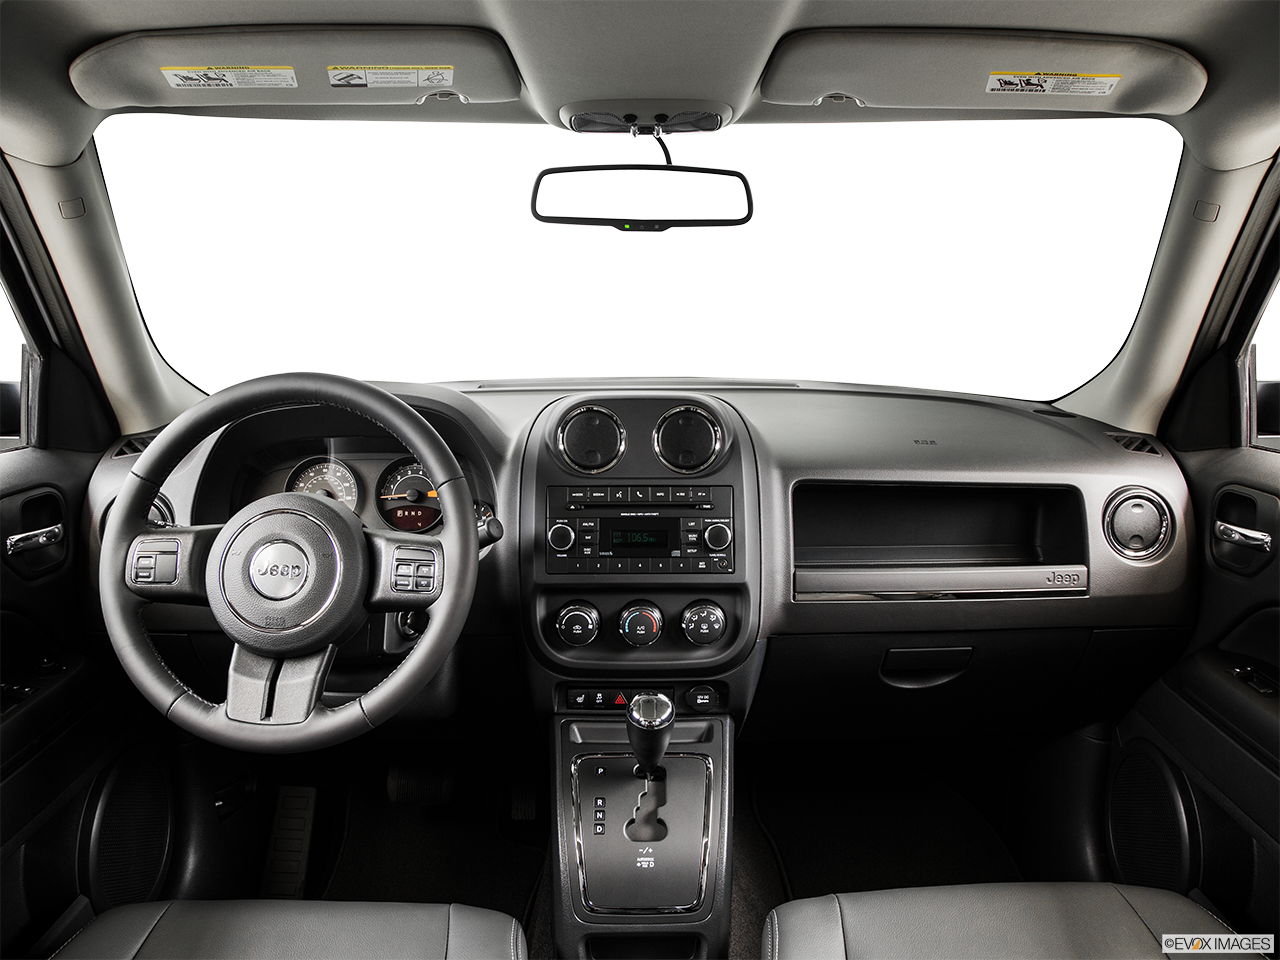 Interior View Of 2015 Jeep Patriot in Huntington Beach